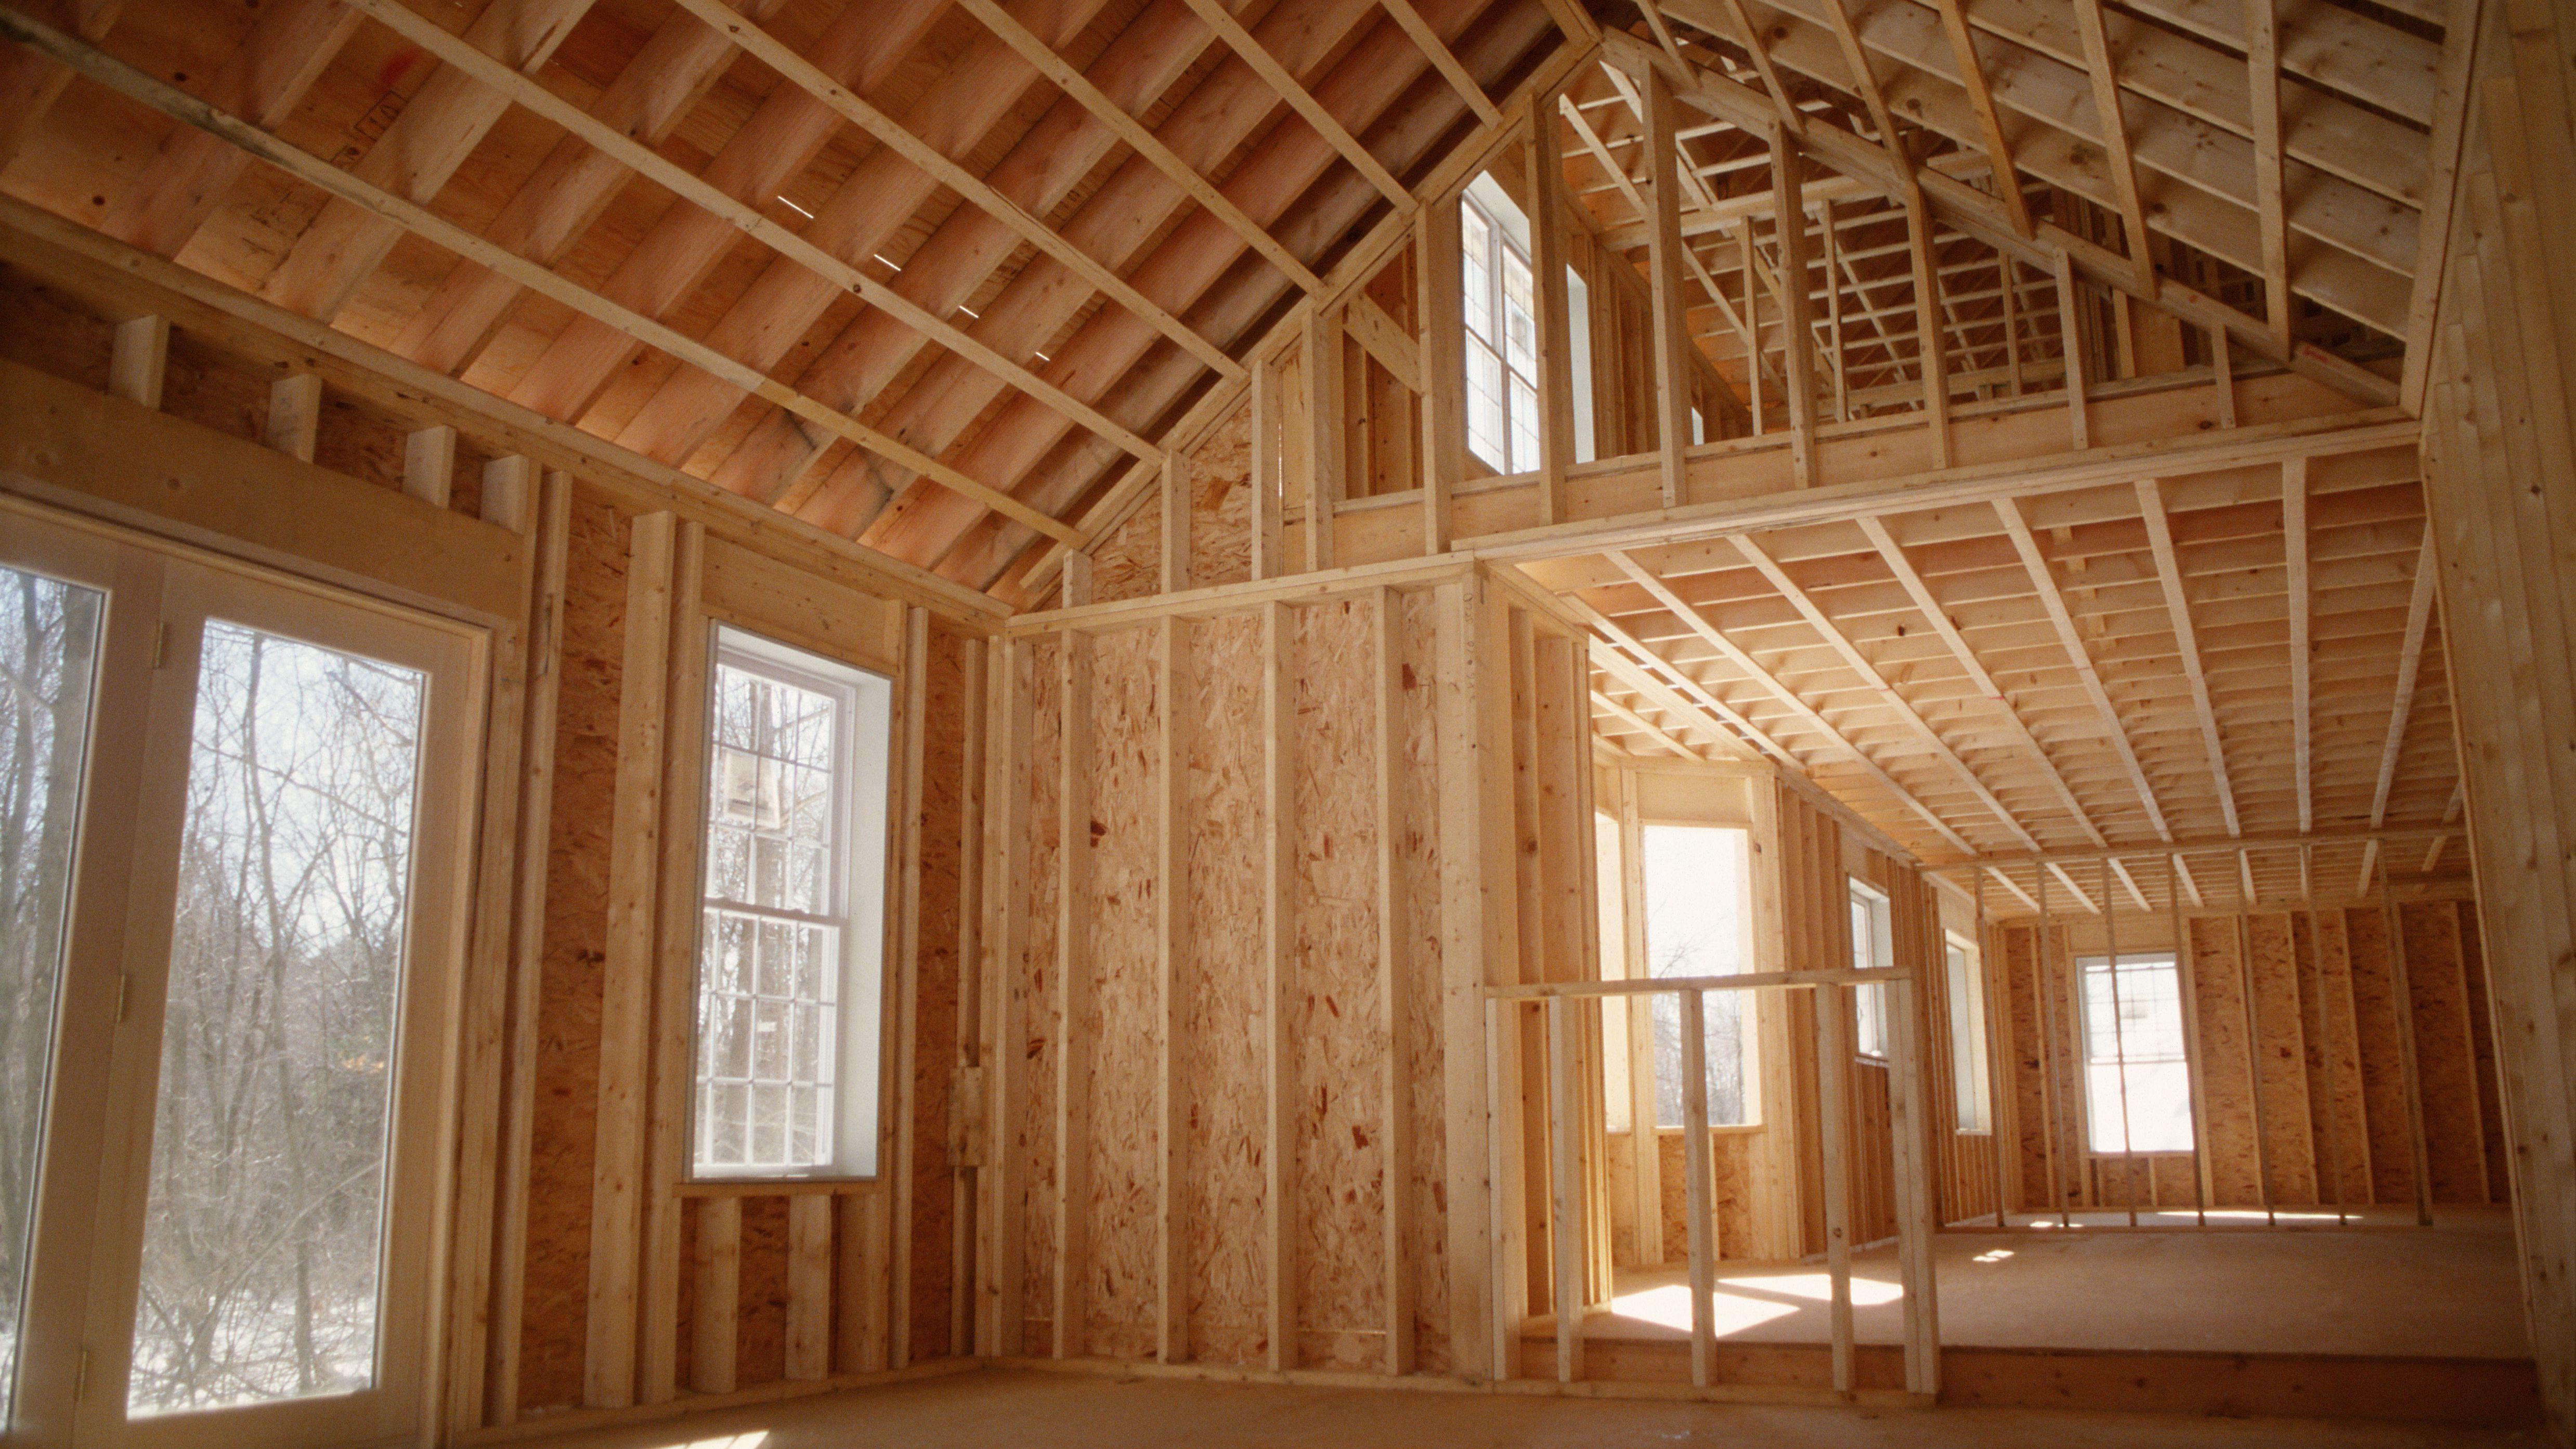 Construction Loans: Funds to Build and Buy Land